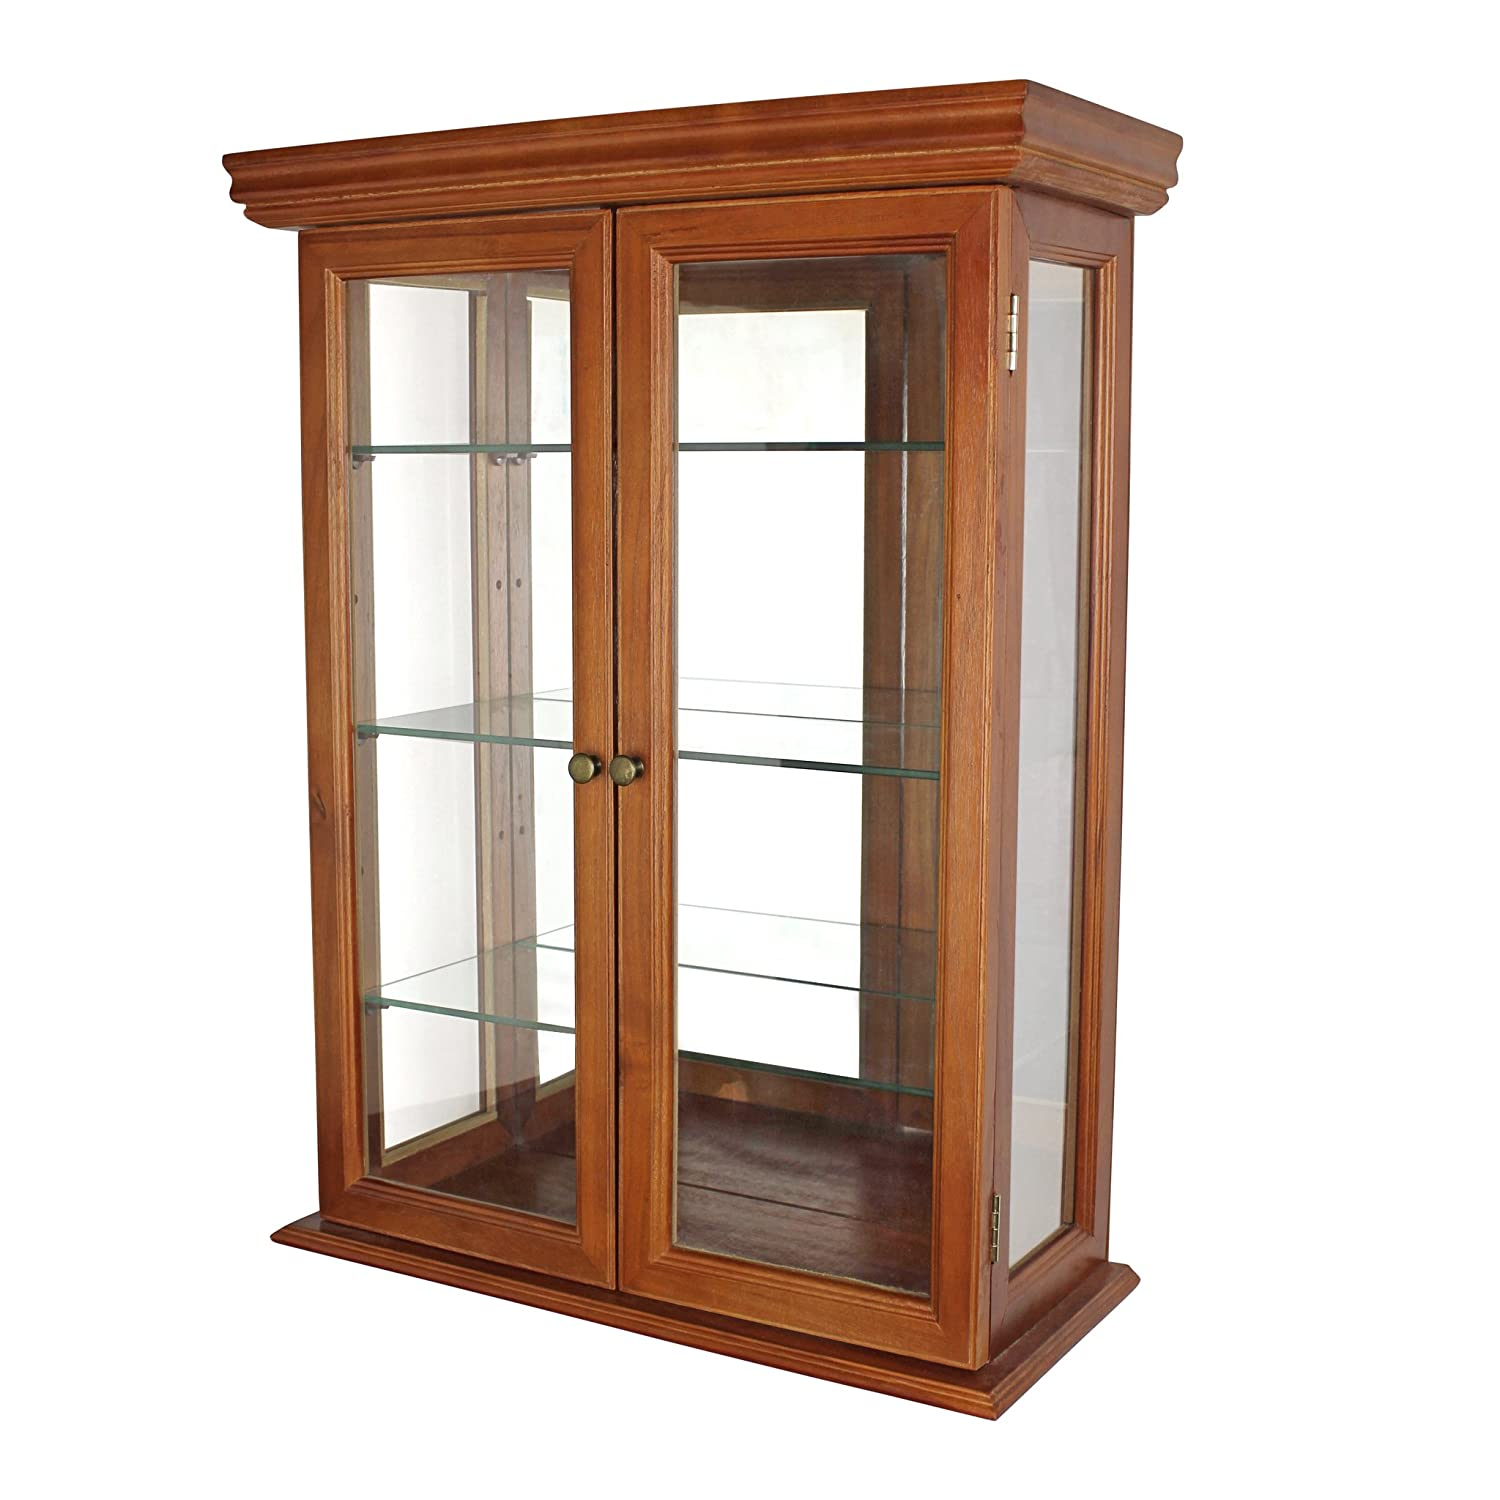 Design Toscano Country Tuscan Glass Wall Mounted Storage Curio Cabinet, 26 Inch, Hardwood, Walnut Finish BN2430